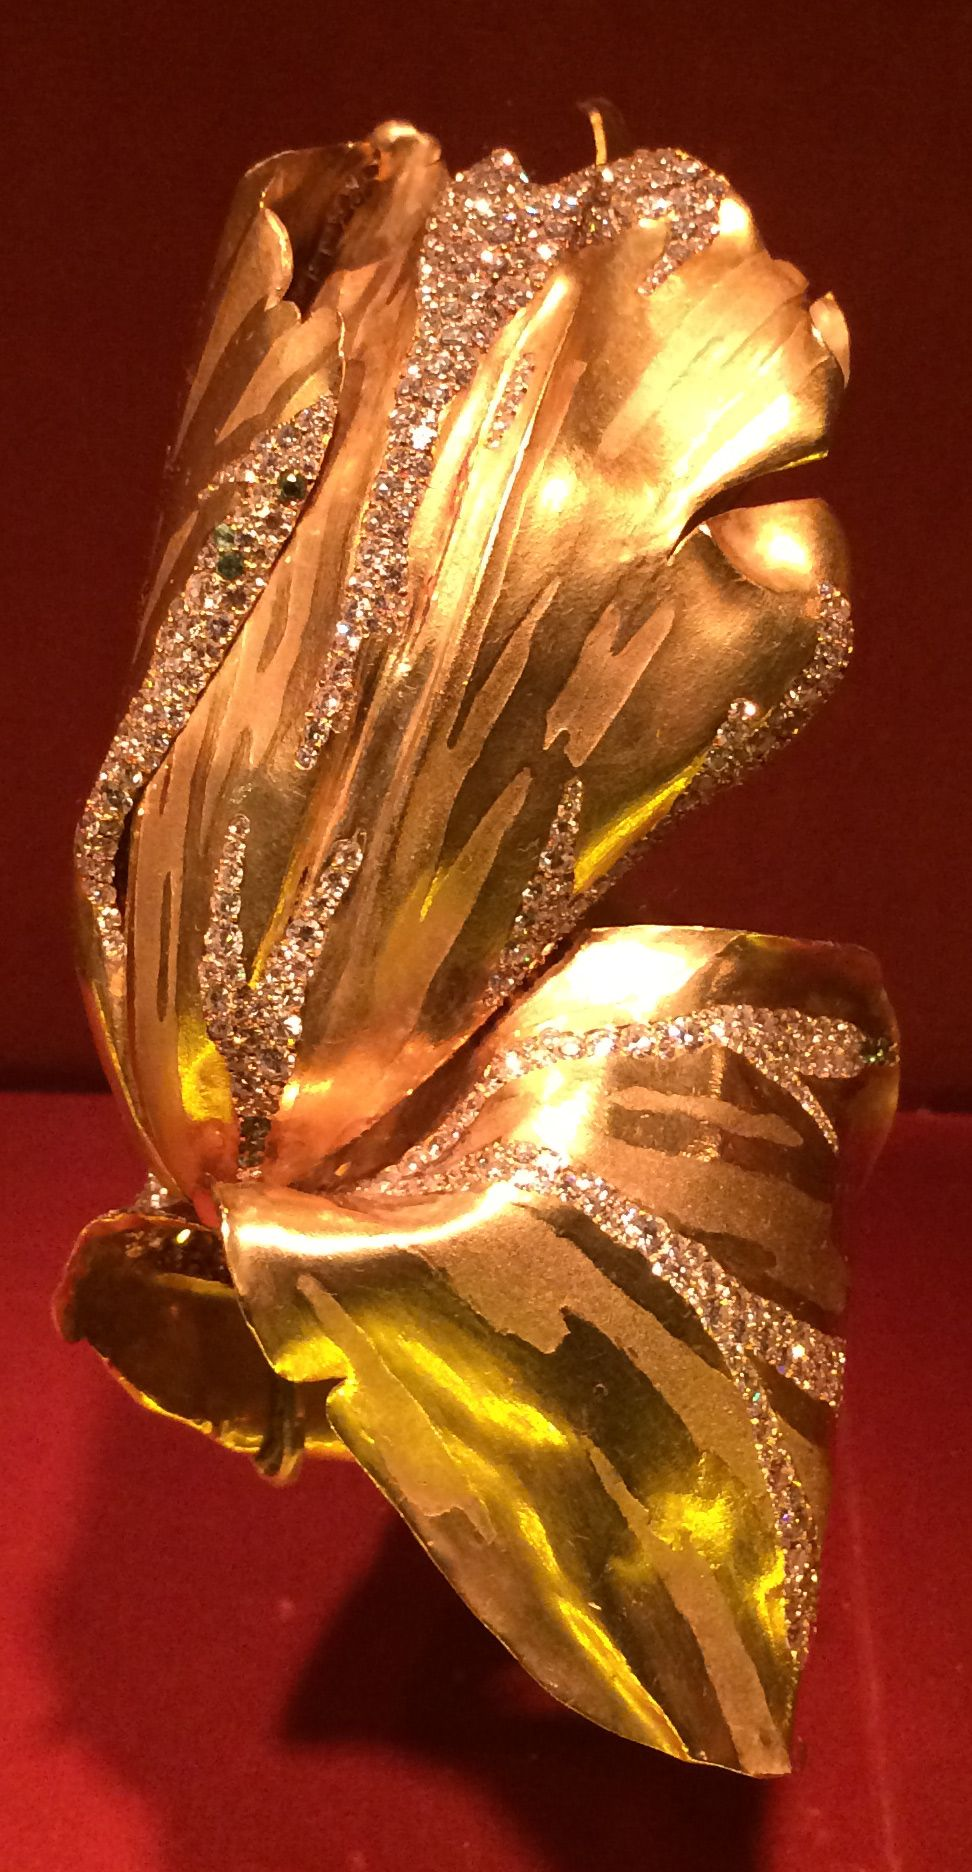 Parrot Tulip Bracelet, Diamond, garnet, gold, JAR Paris, 1994. Photo by Cheryl Kremkow.